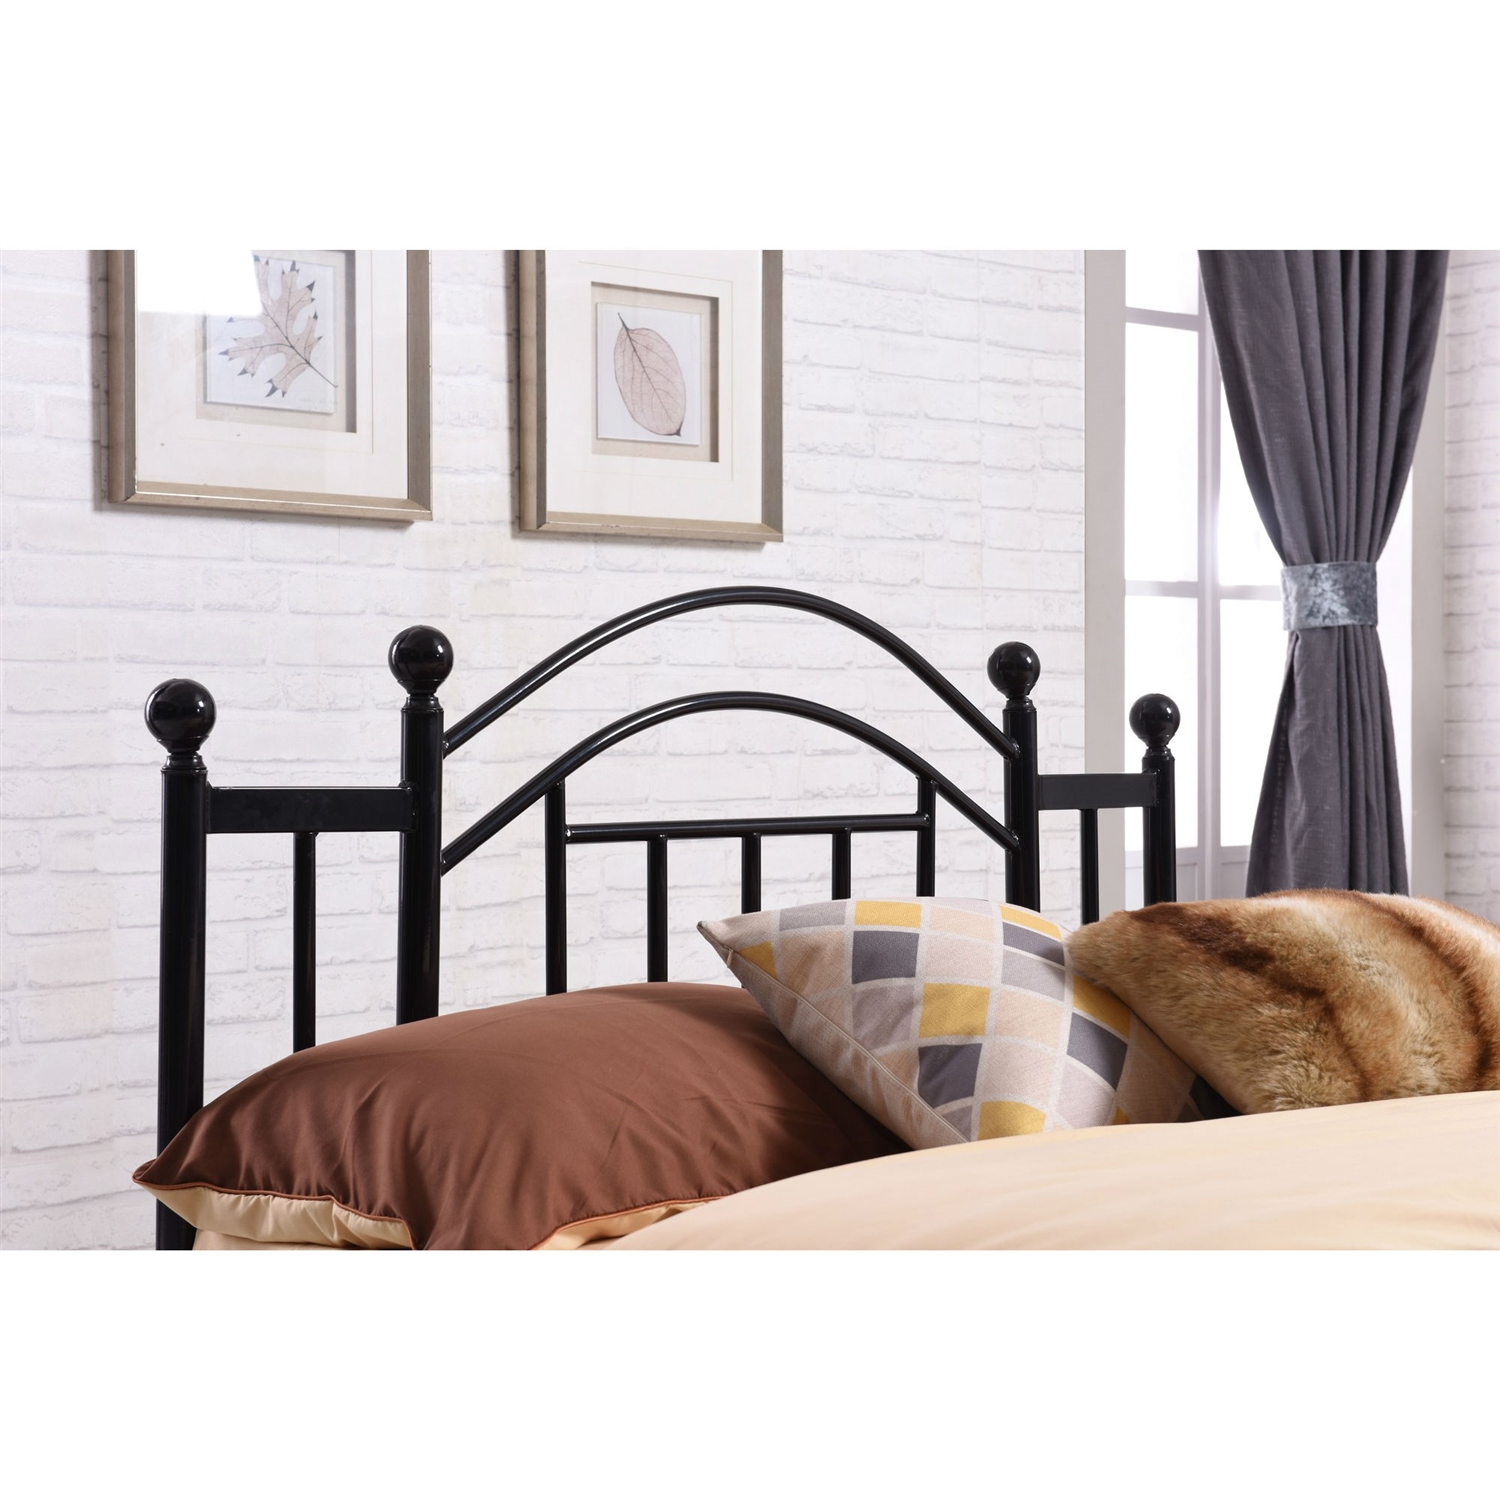 retail price 27900 - Black Platform Bed Frame